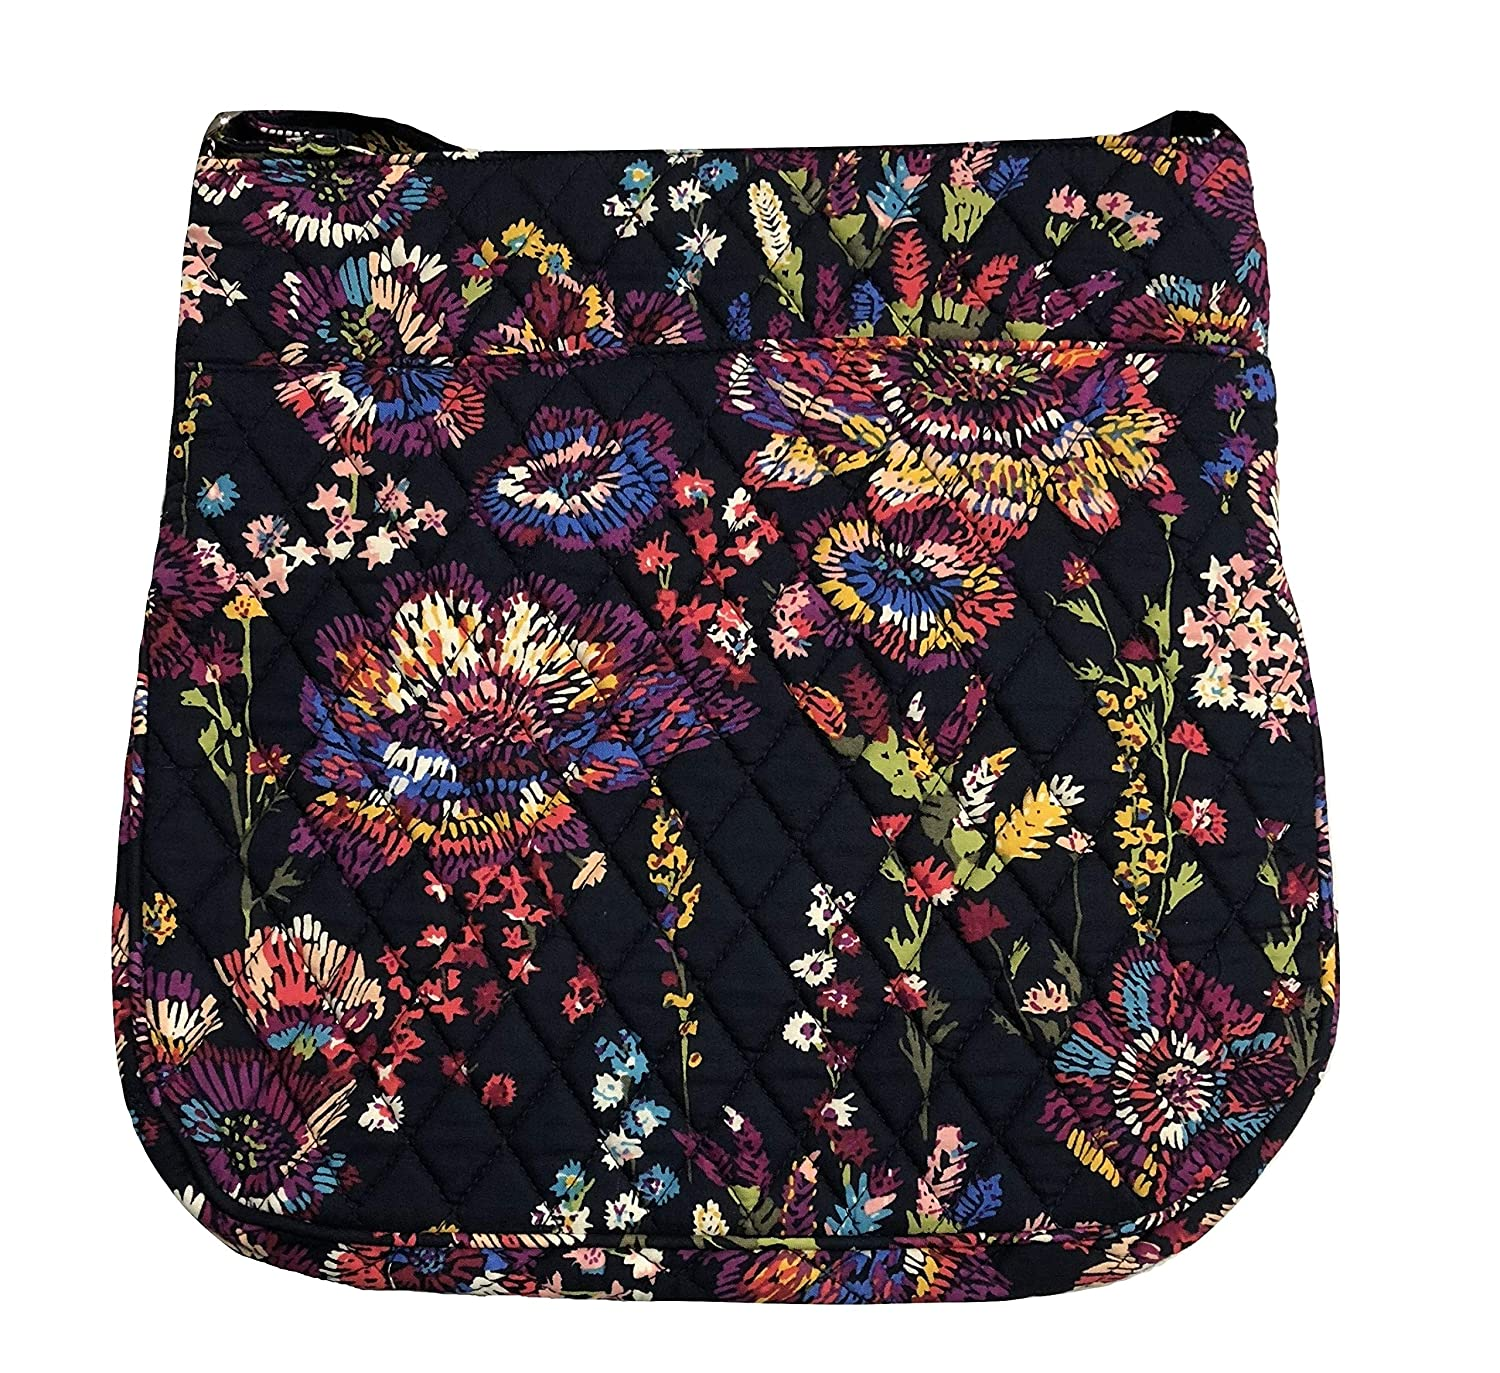 高価値 Vera Bradley B07MCVRBT6 レディース B07MCVRBT6 Midnight Vera Wildflowers Wildflowers Midnight Wildflowers, うおぬま倉友農園:9d0e0a97 --- egreensolutions.ca